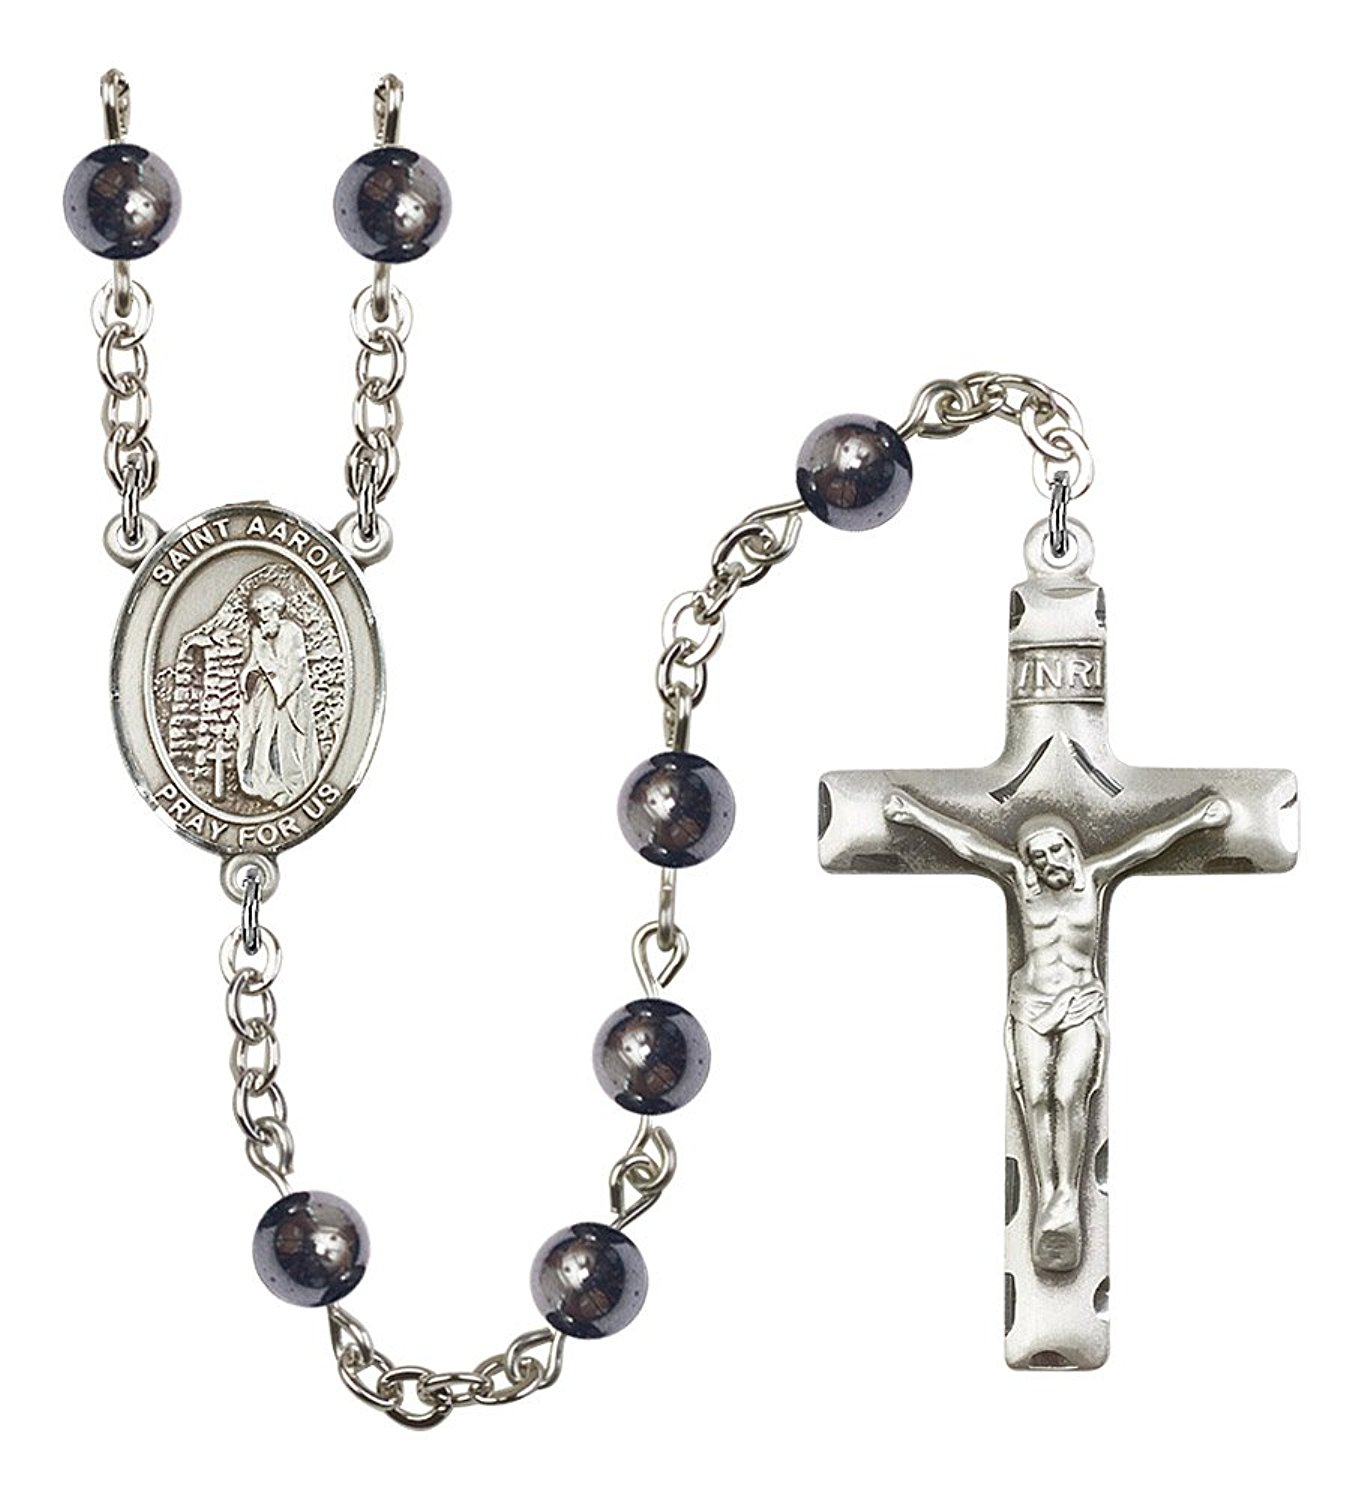 Silver Finish St. Aaron Rosary with 6mm Hematite Beads, St. Aaron Center, and 1 3/4 x 1 inch Crucifix, Gift Boxed